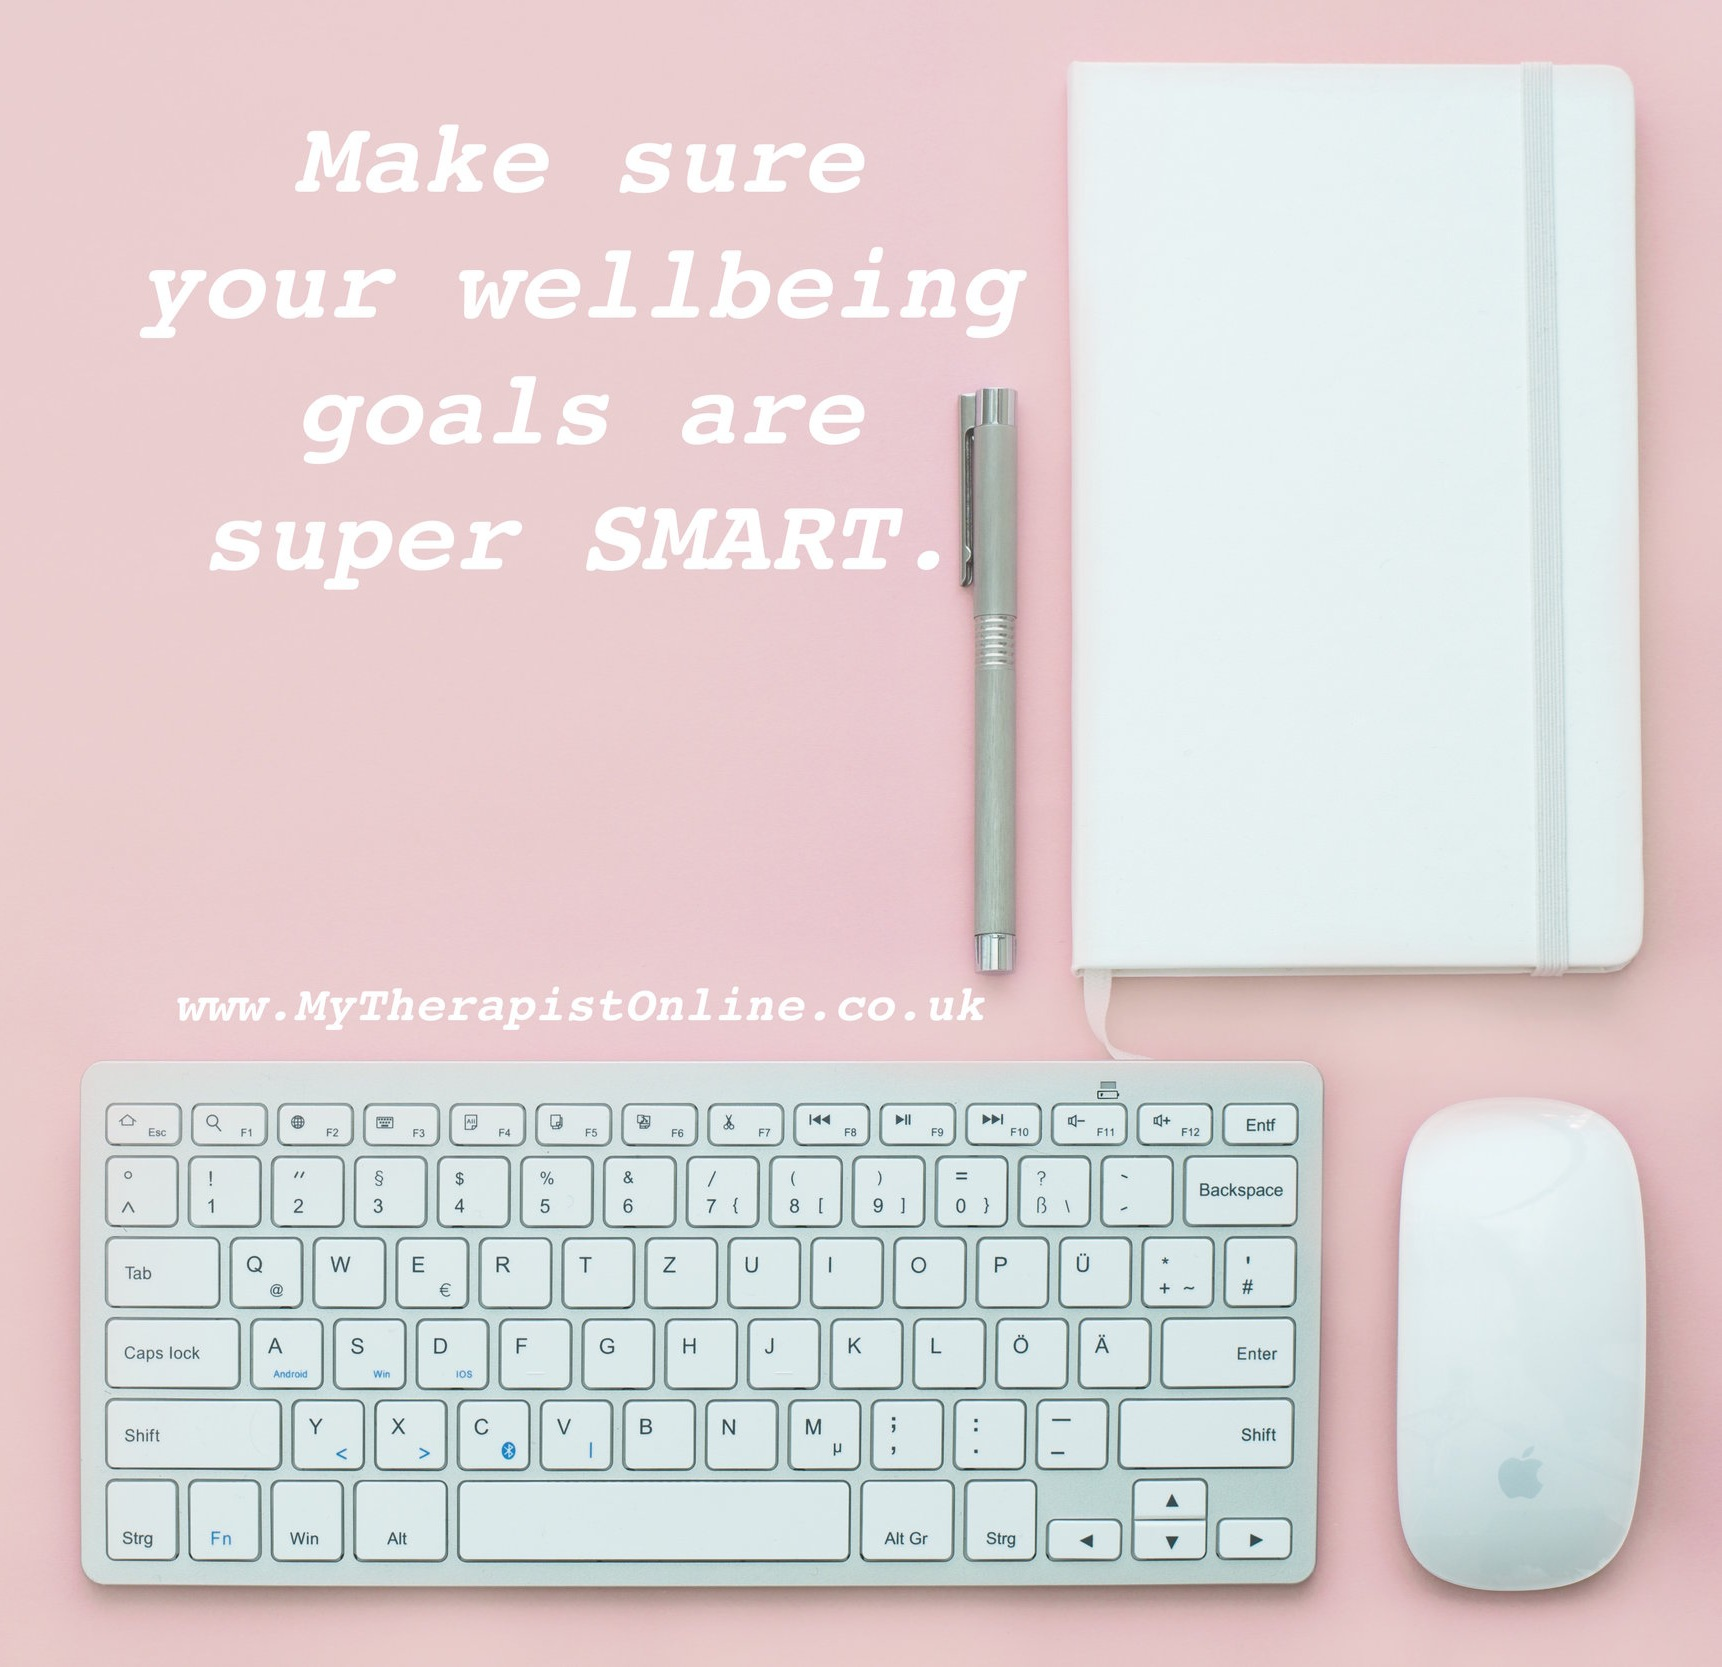 Online Therapy - UK - SMART wellbeing goals - My Therapist Online